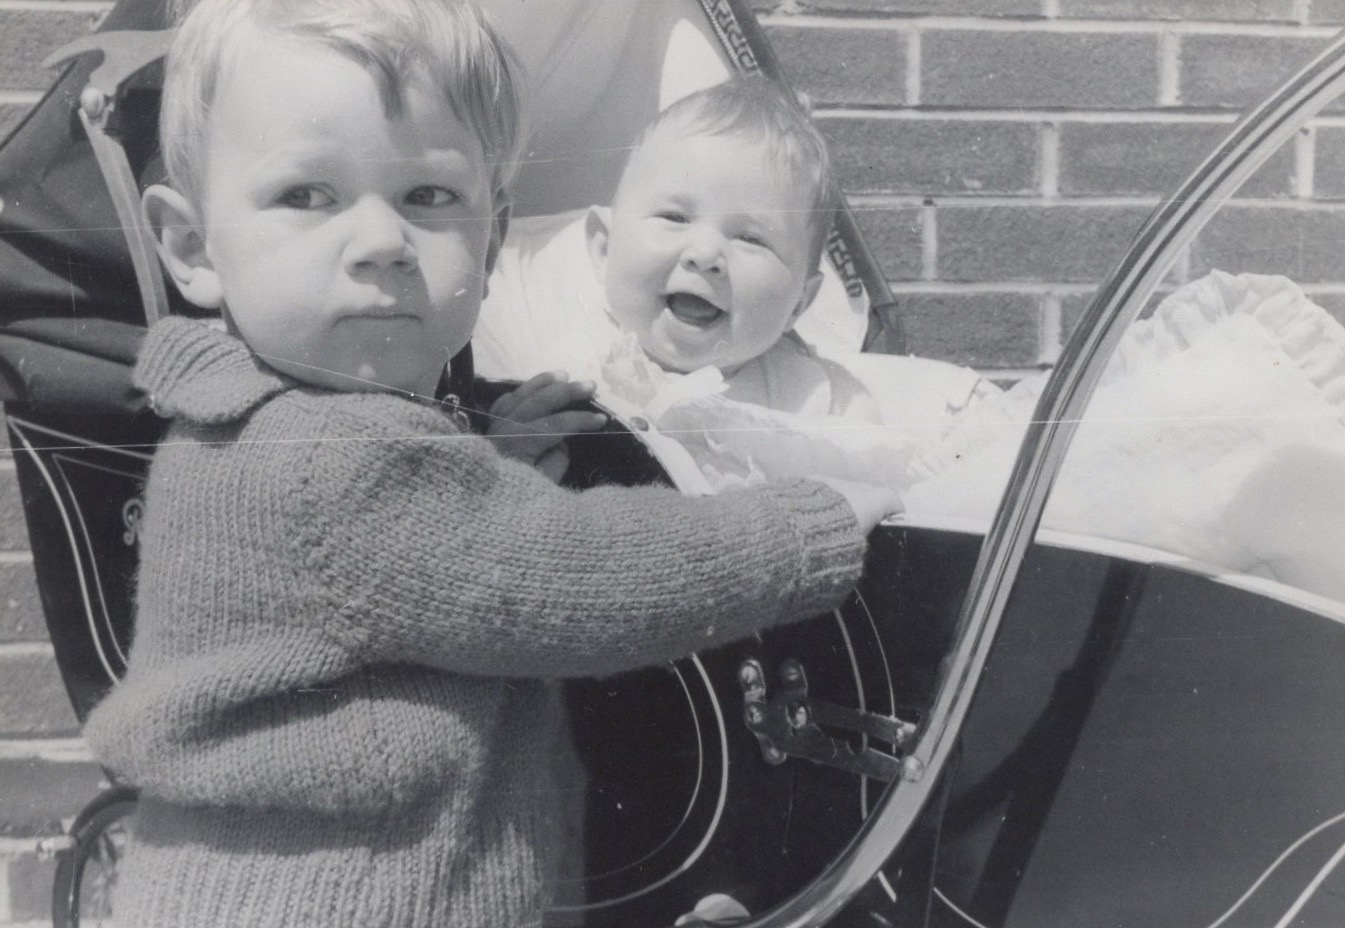 Black and white photograph of Mark stood next to Vince Poynter in a pram